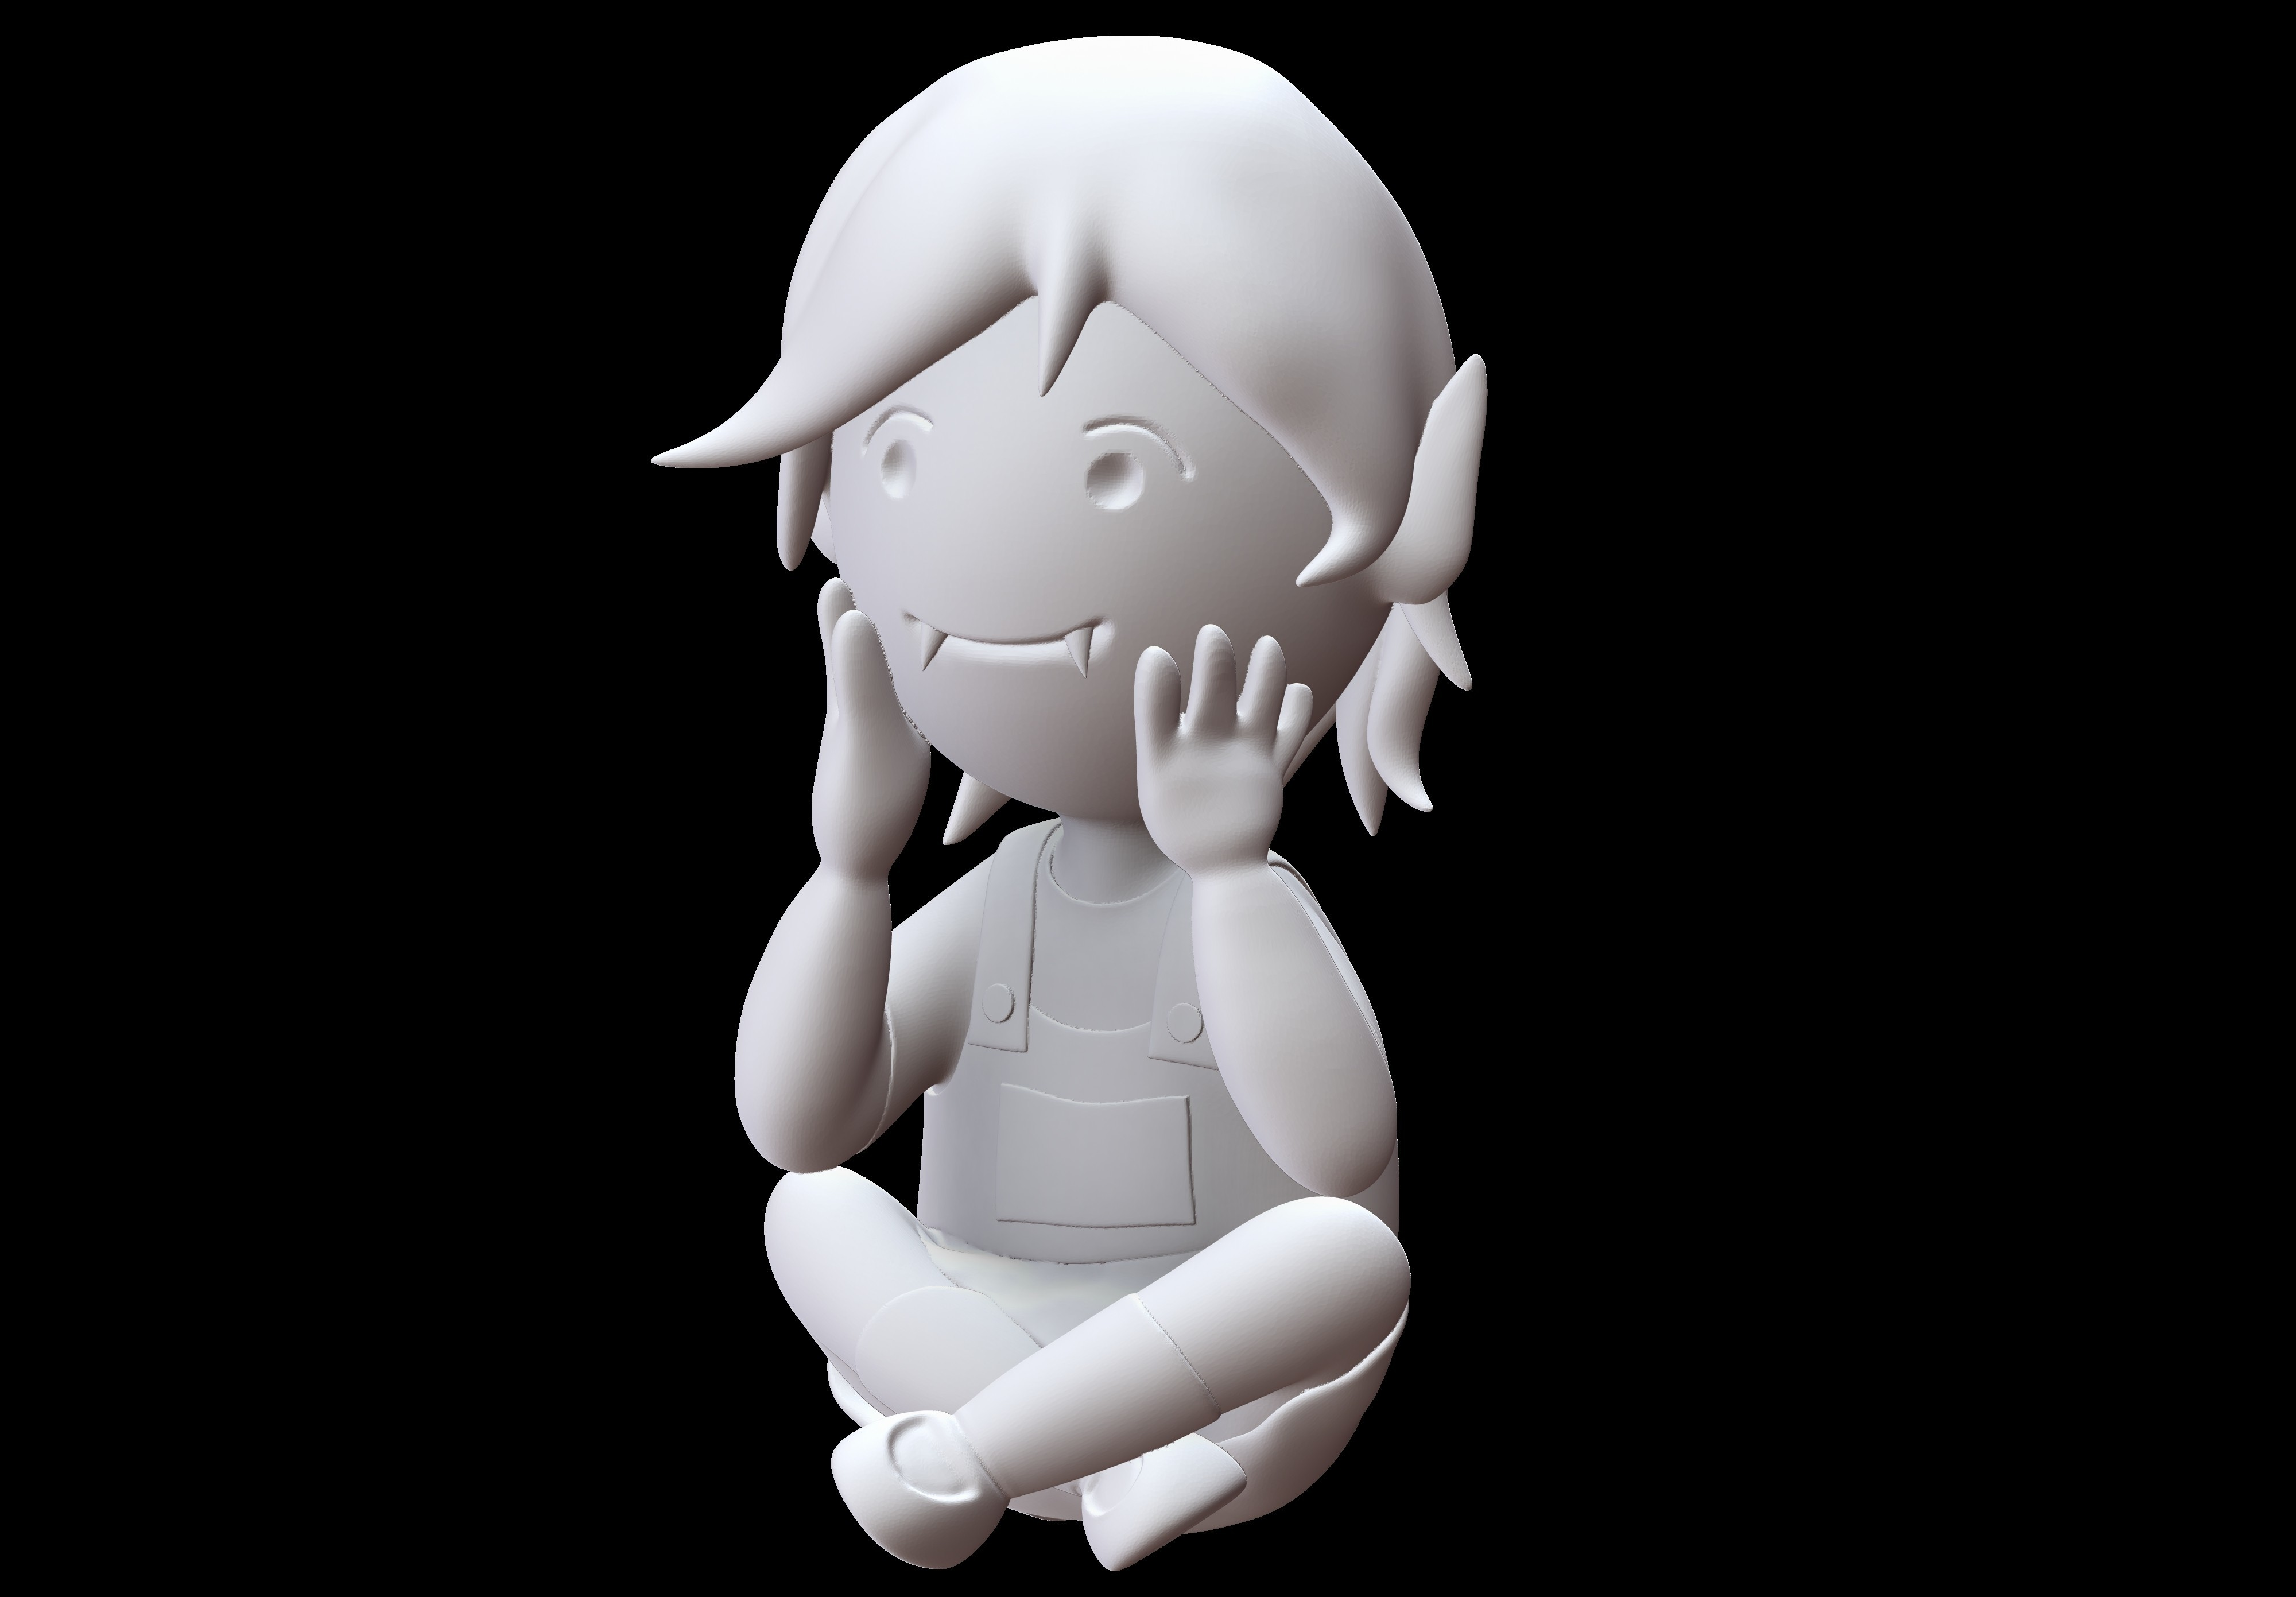 Render 7.jpg Download STL file Adventure Time Diorama • 3D printer design, Shukito